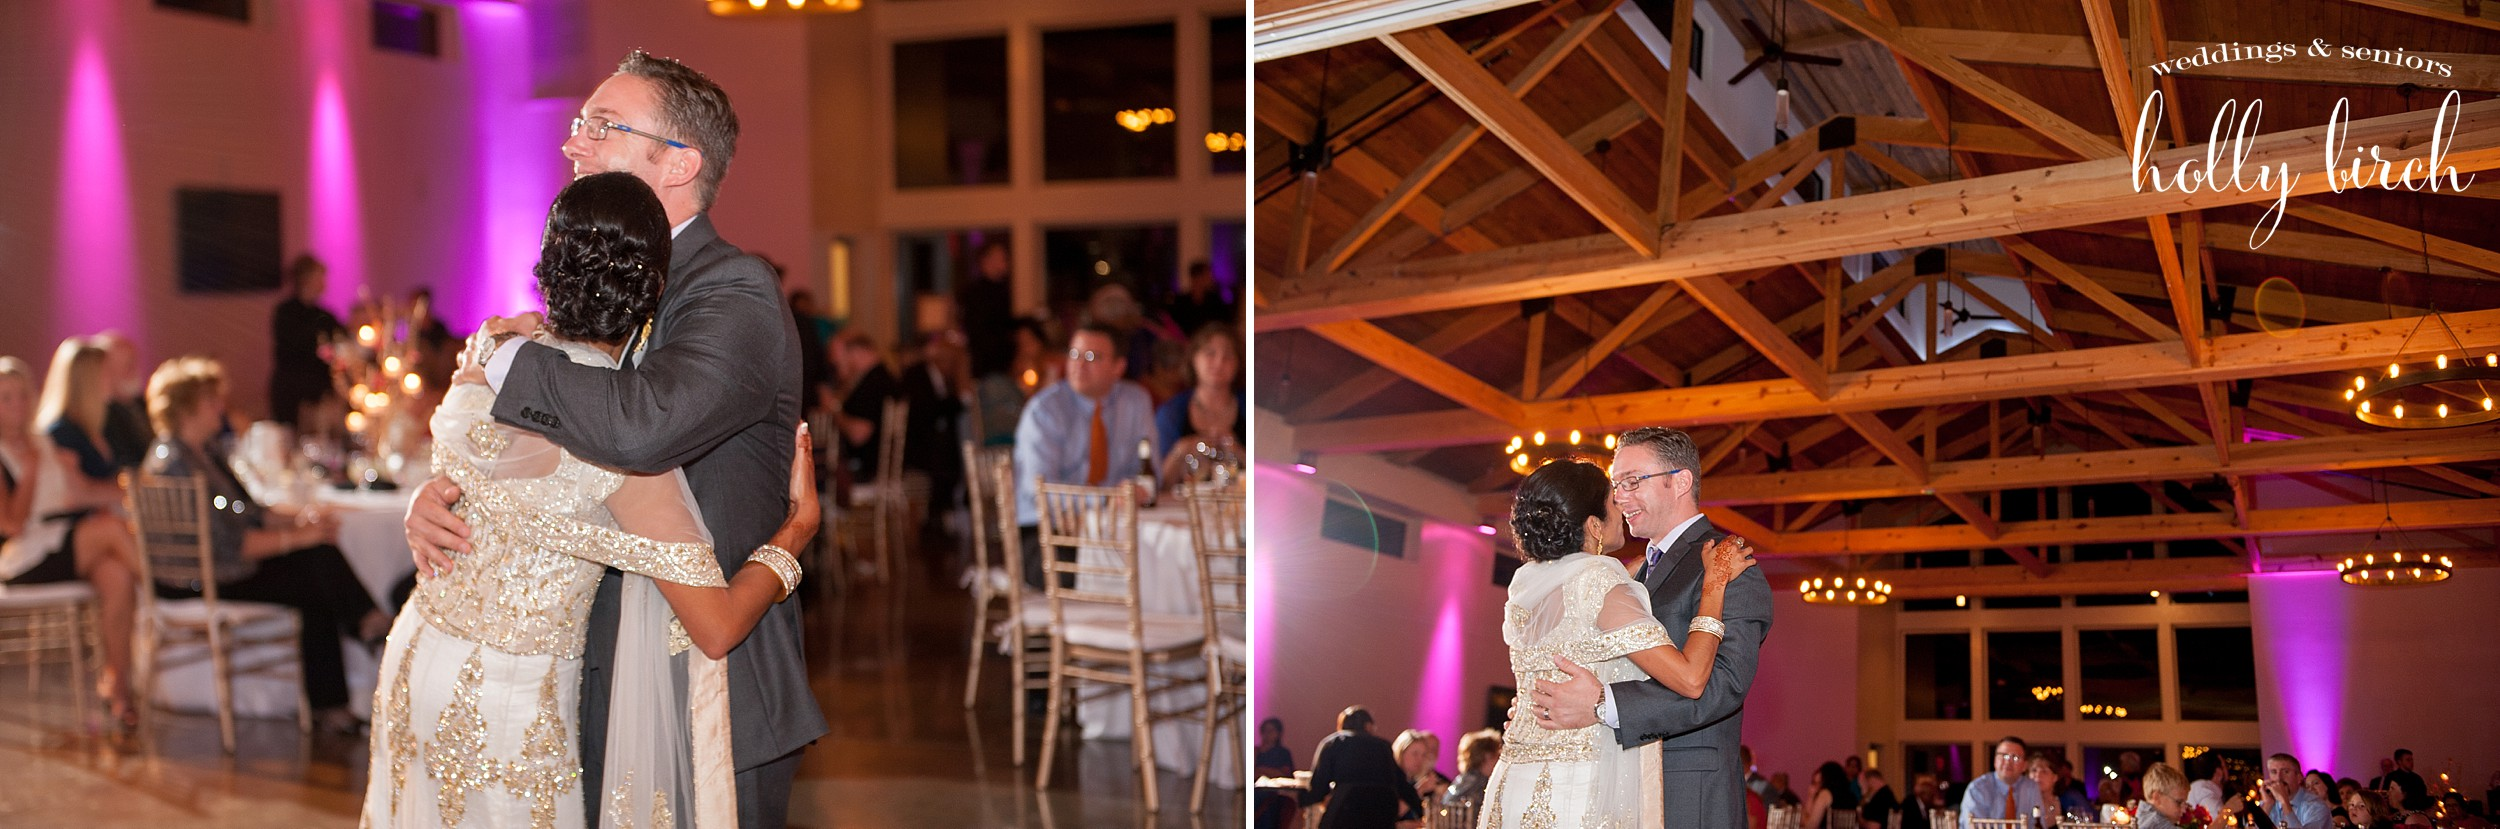 first dance candid photos